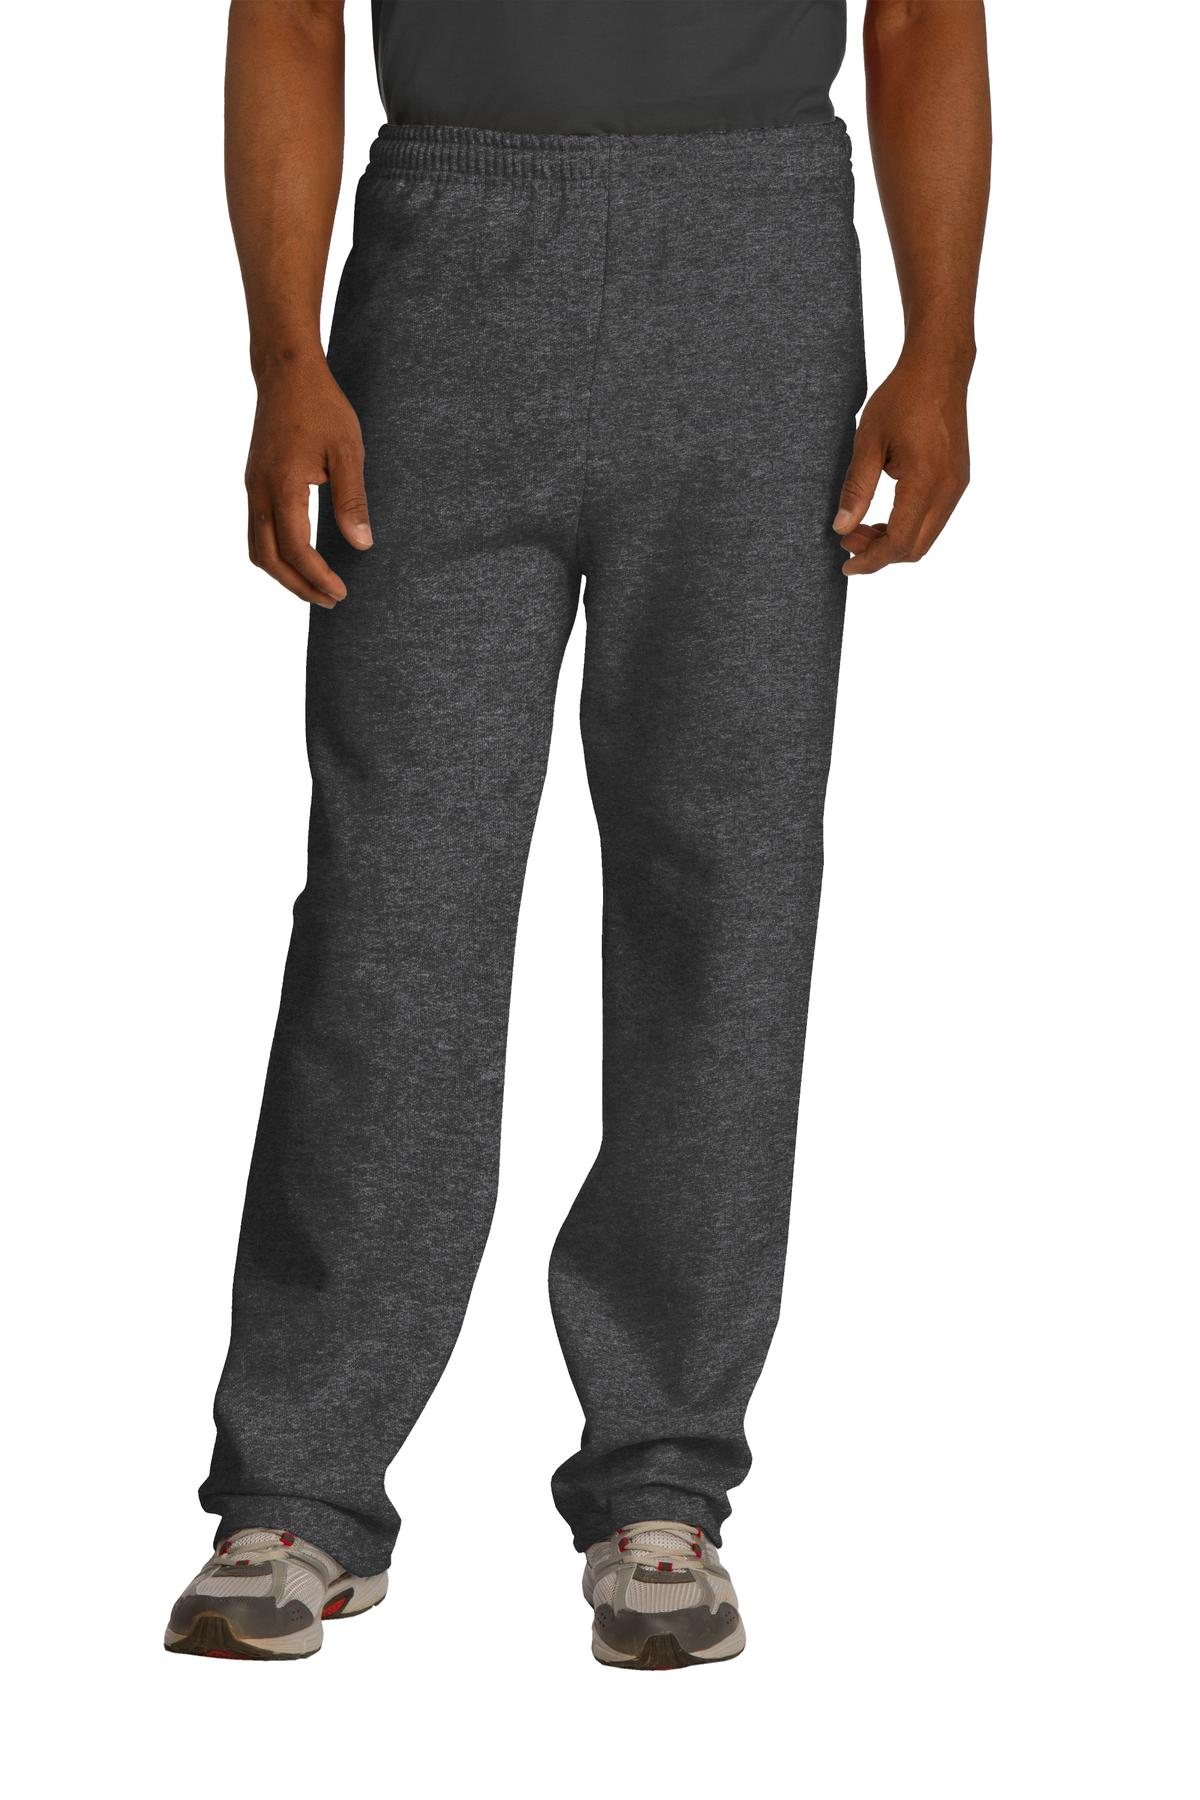 JERZEES NuBlend Open Bottom Pant with Pockets. 974MP